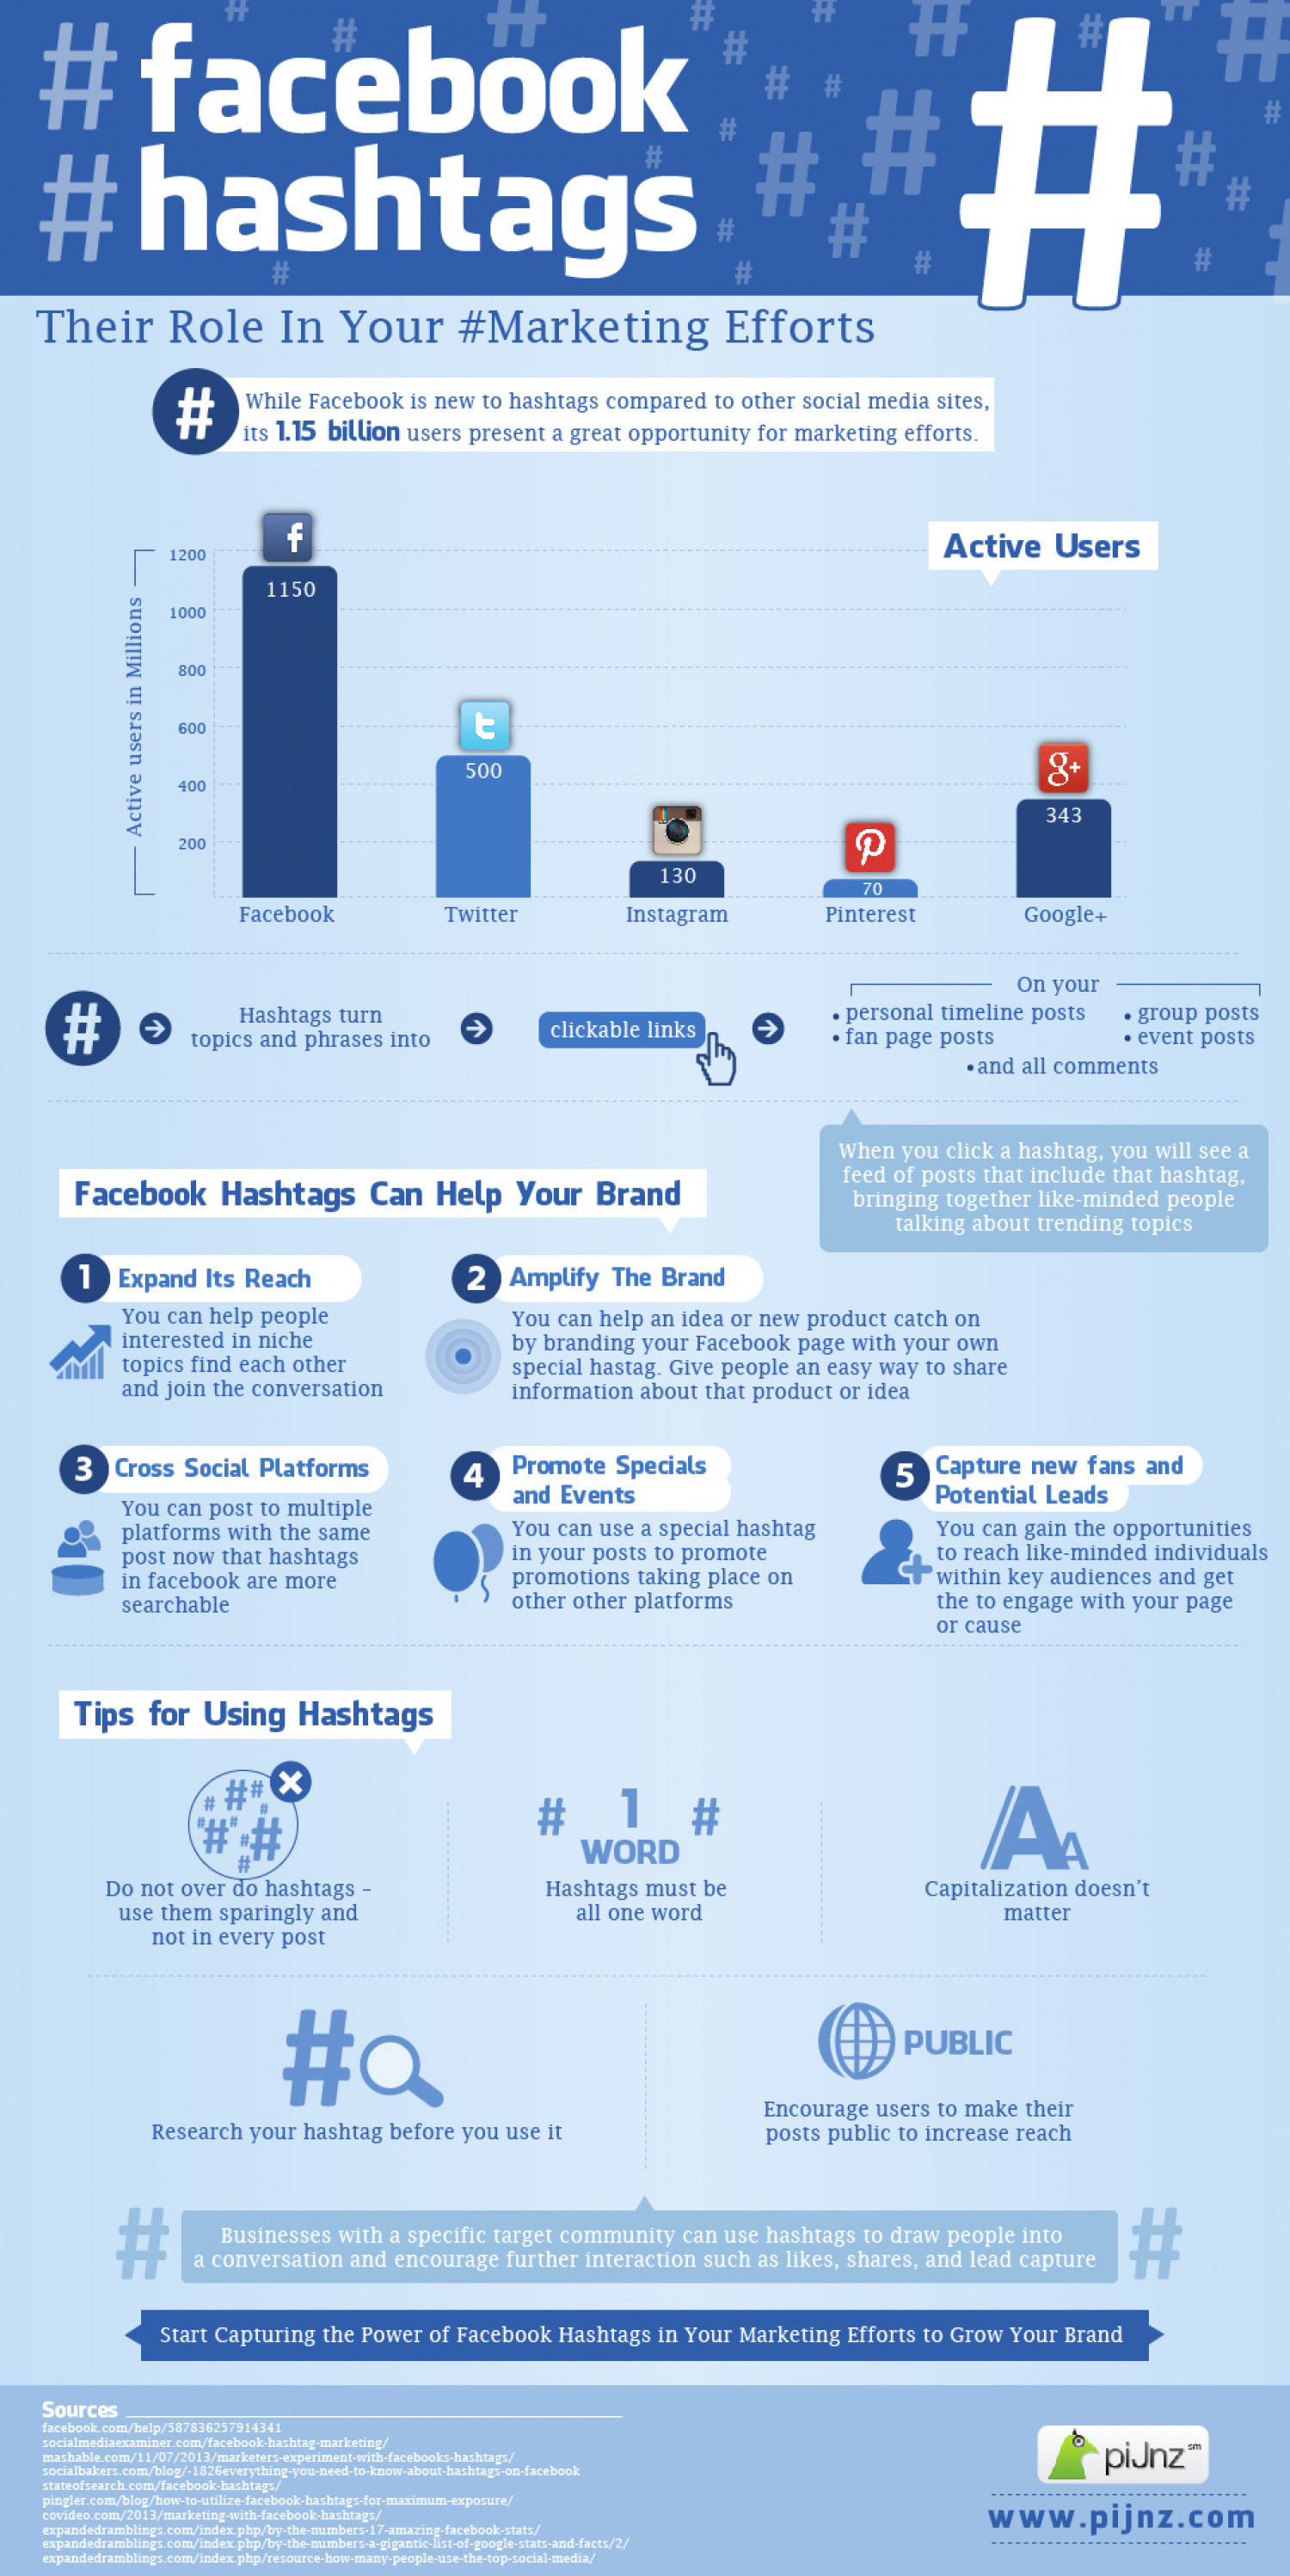 #facebook #hashtags Infographic